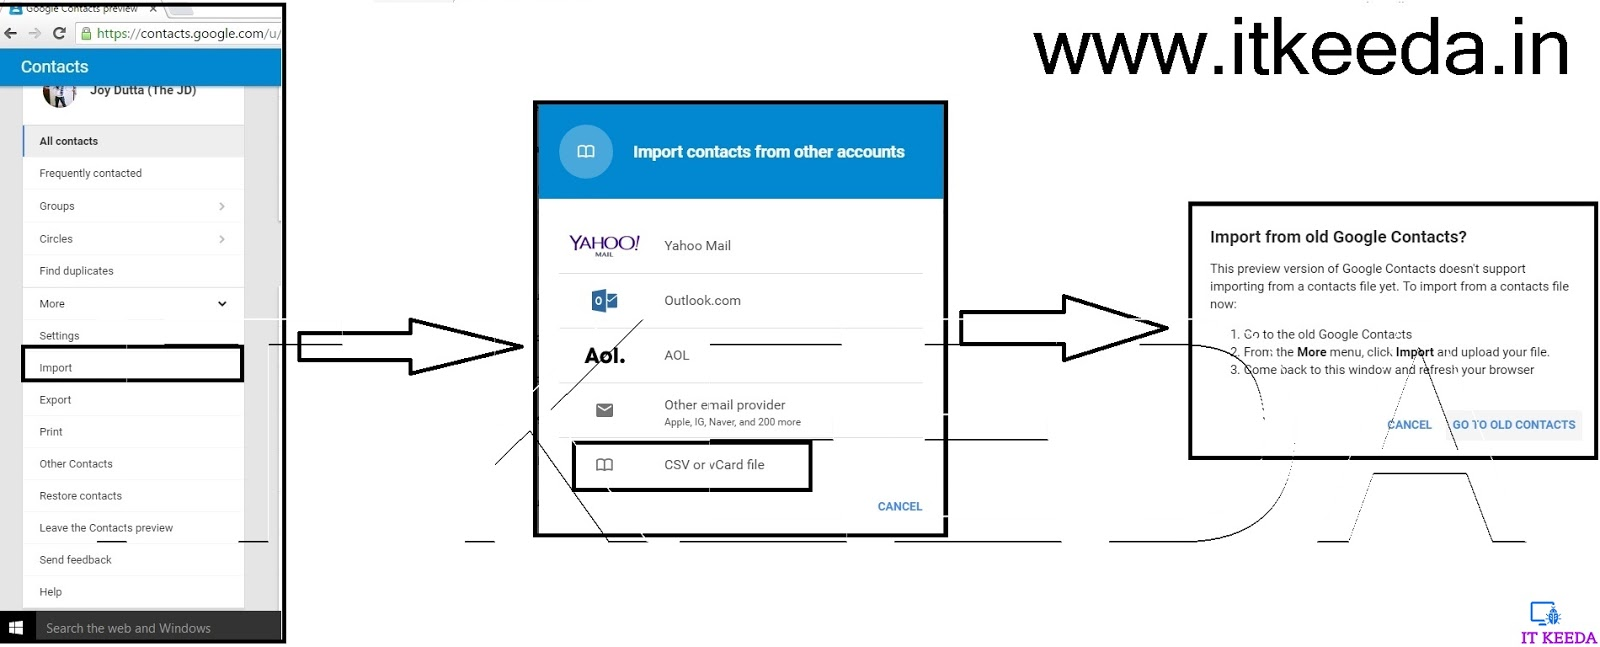 How to Upload Contacts In Google Contacts (Excel) - IT KEEDA